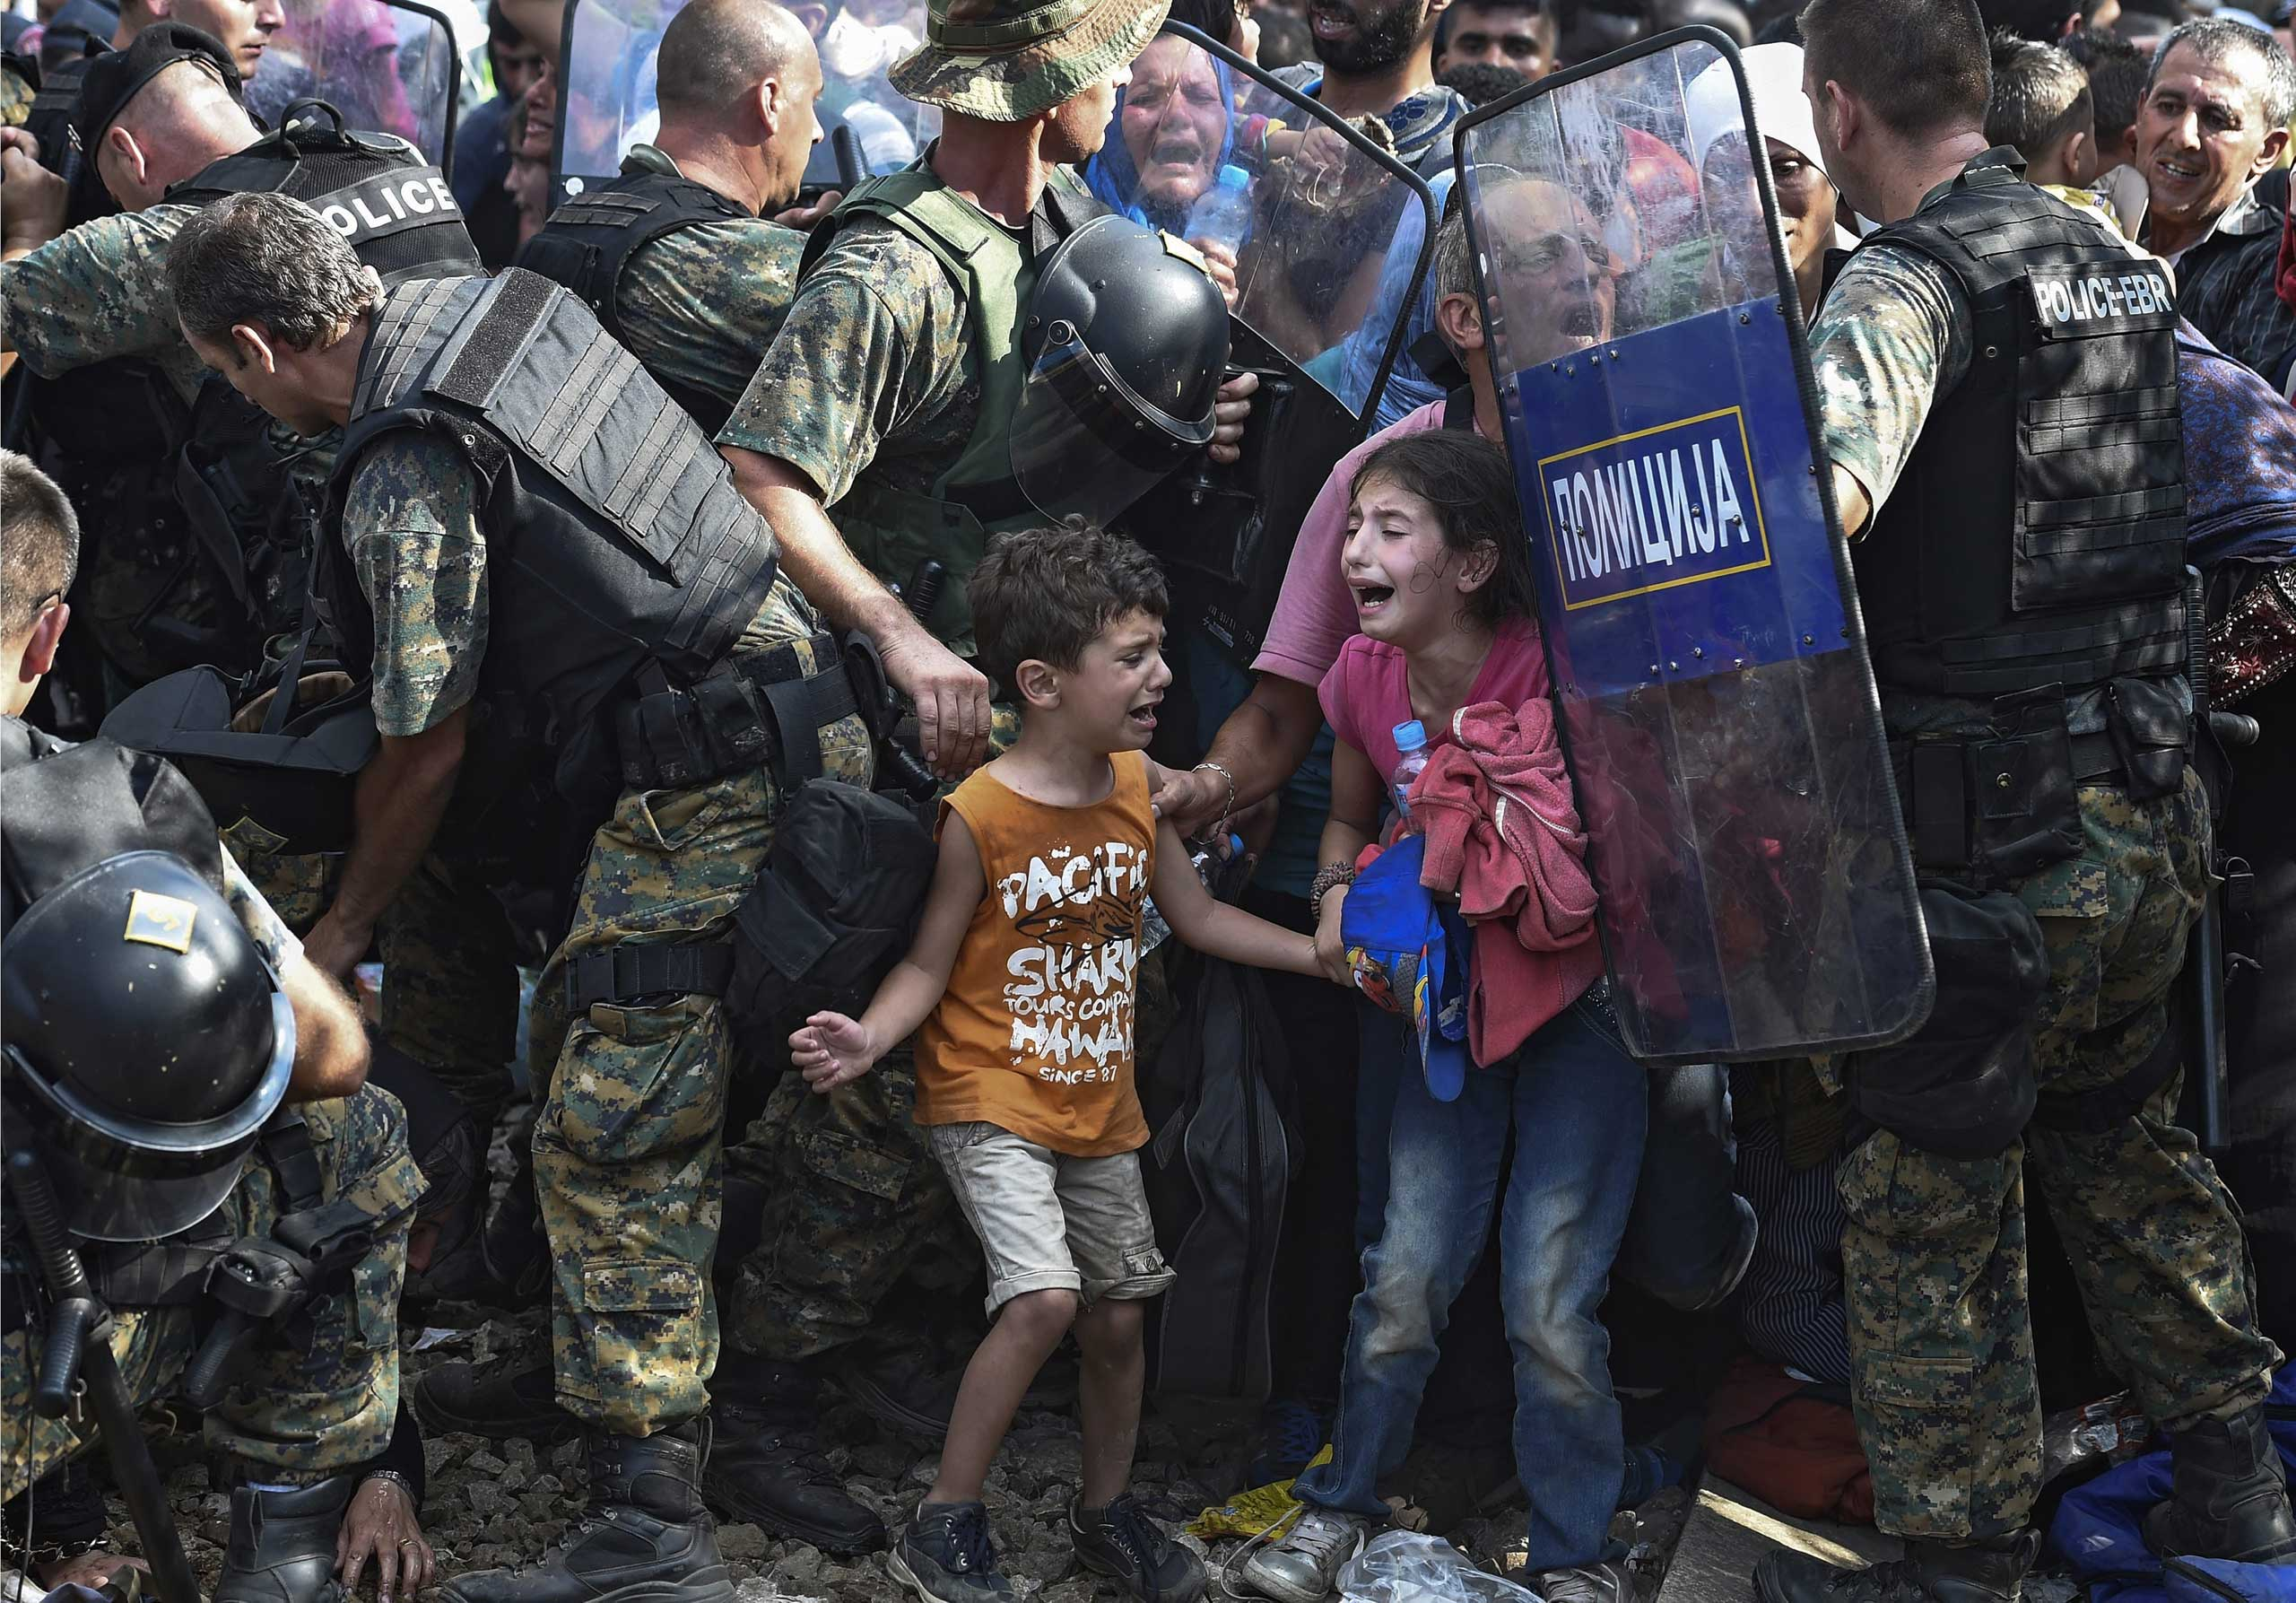 Georgi Licovski:  The Macedonian police were given an order to shut down the illegal passage and not to let anyone through until a solution was found for the transfer of huge number of refugees that were coming from Greece. The police had their orders but the migrants had their agenda. They tried to pass the police cordon by putting the women and children in the front. The men started pushing. The police started letting through some of the women and children, and suddenly there was mass confusion and chaos all around.                                                               That was a day I will never forget. It was the first time I saw my colleagues cry and take pictures, shaken by the terrified children's faces that were trying to find their parents, brothers or sisters in the chaos. I was taking pictures with the intention of showing the world what was happening so that no child should ever live through this again. With time and distance, I can now say that the police weren't being violent, they had orders not to let anyone pass, but the desperation of the refugees was much bigger than the policemen's shields.                                                               This picture is very important for me, maybe one of the most important in my career, because of its many publications in newspapers around the world. [It forced] the political elite [in my country] to approach the migrant problem more seriously.                                                              This photo was taken on the Greek side of the border into Macedonia, near the southern city of Gevgelija on Aug. 21, 2015.